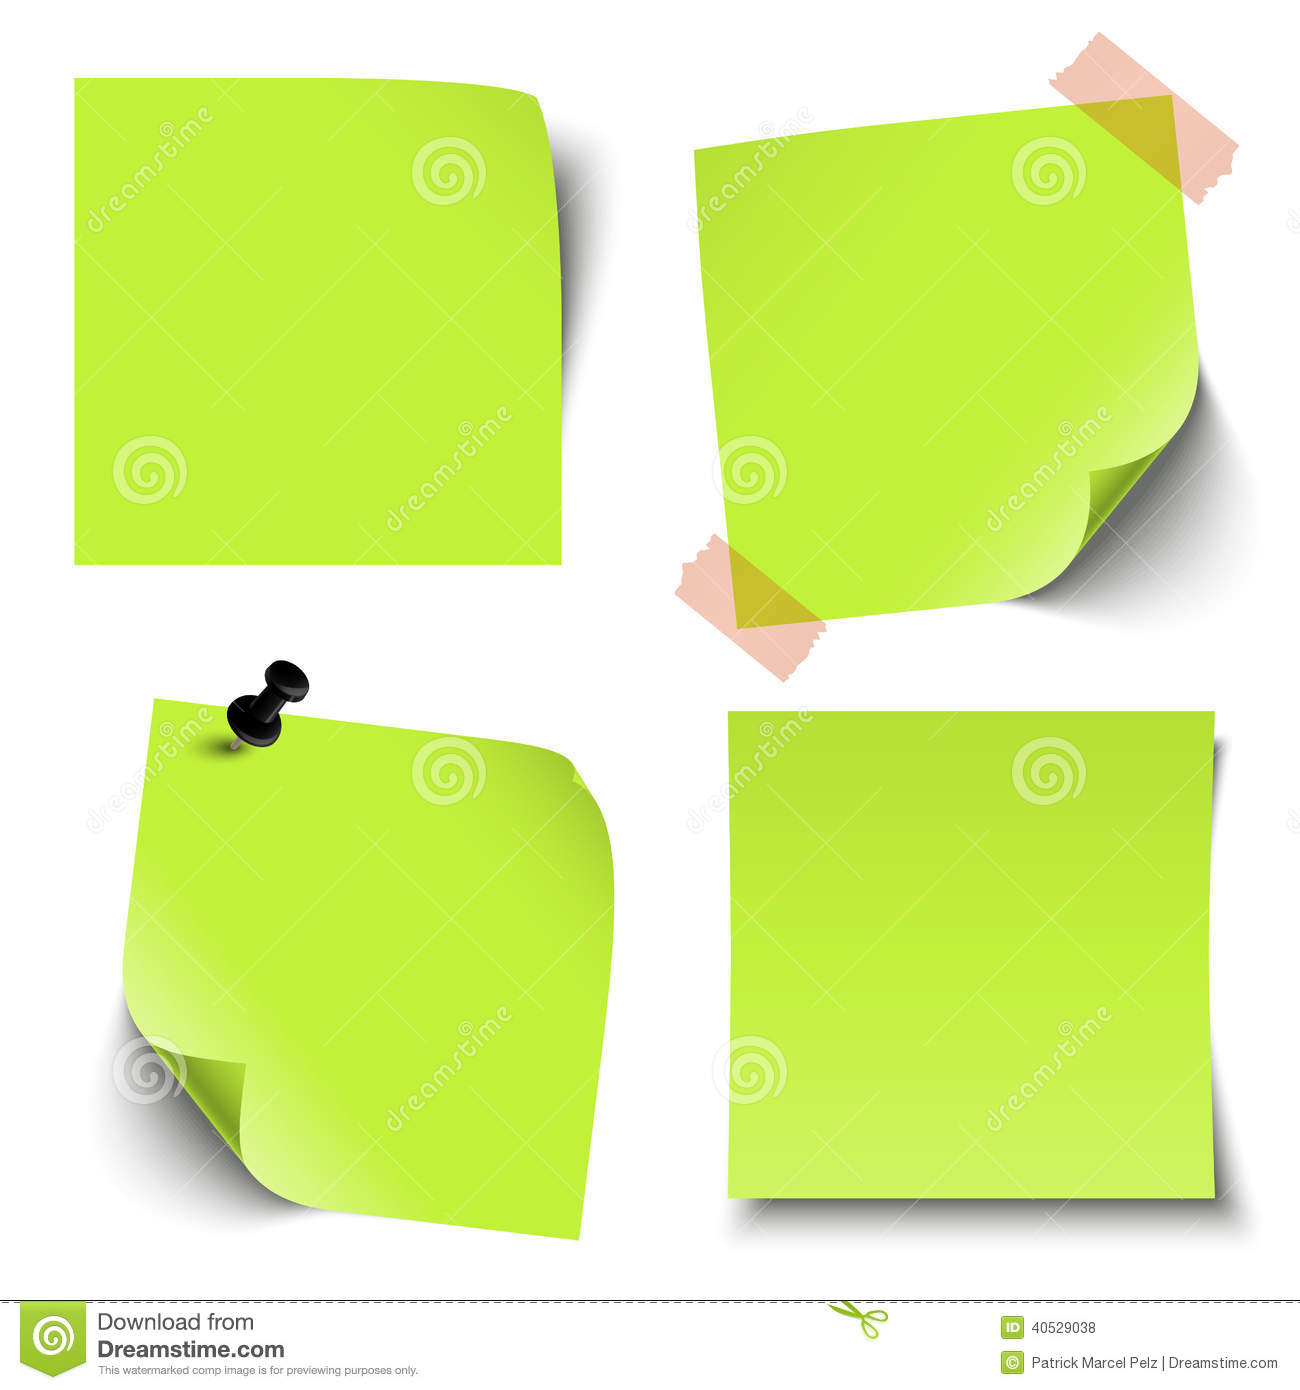 Free vector graphic sticky note note info paper free image on - Collection Of Blank Colored Sticky Notes Royalty Free Stock Photos